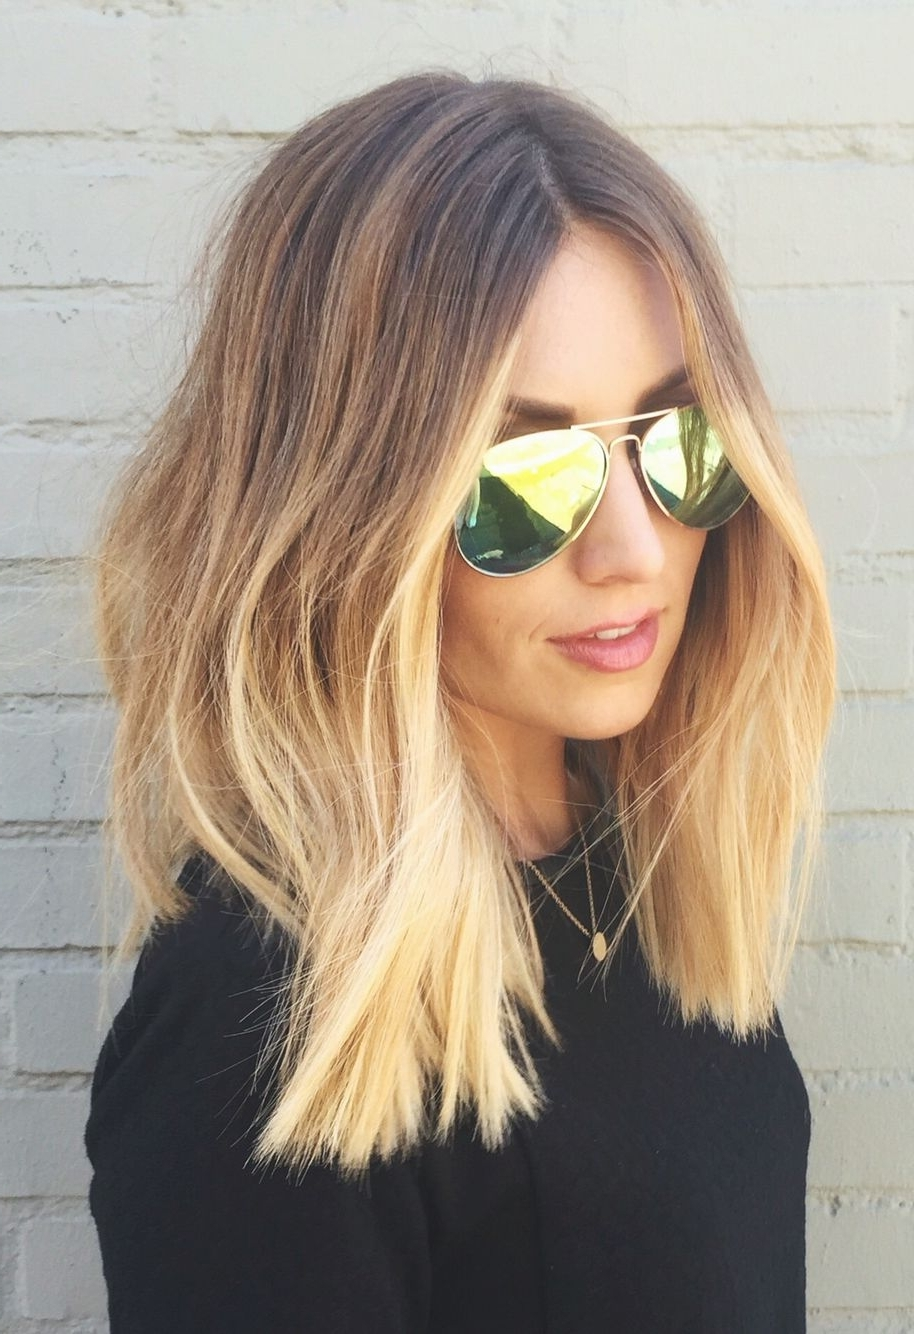 2017 Blonde Lob Hairstyles With Middle Parting Intended For Lob Haircut Looks Fantastic! Ps – What's That Blonde At The End?! I (View 1 of 20)